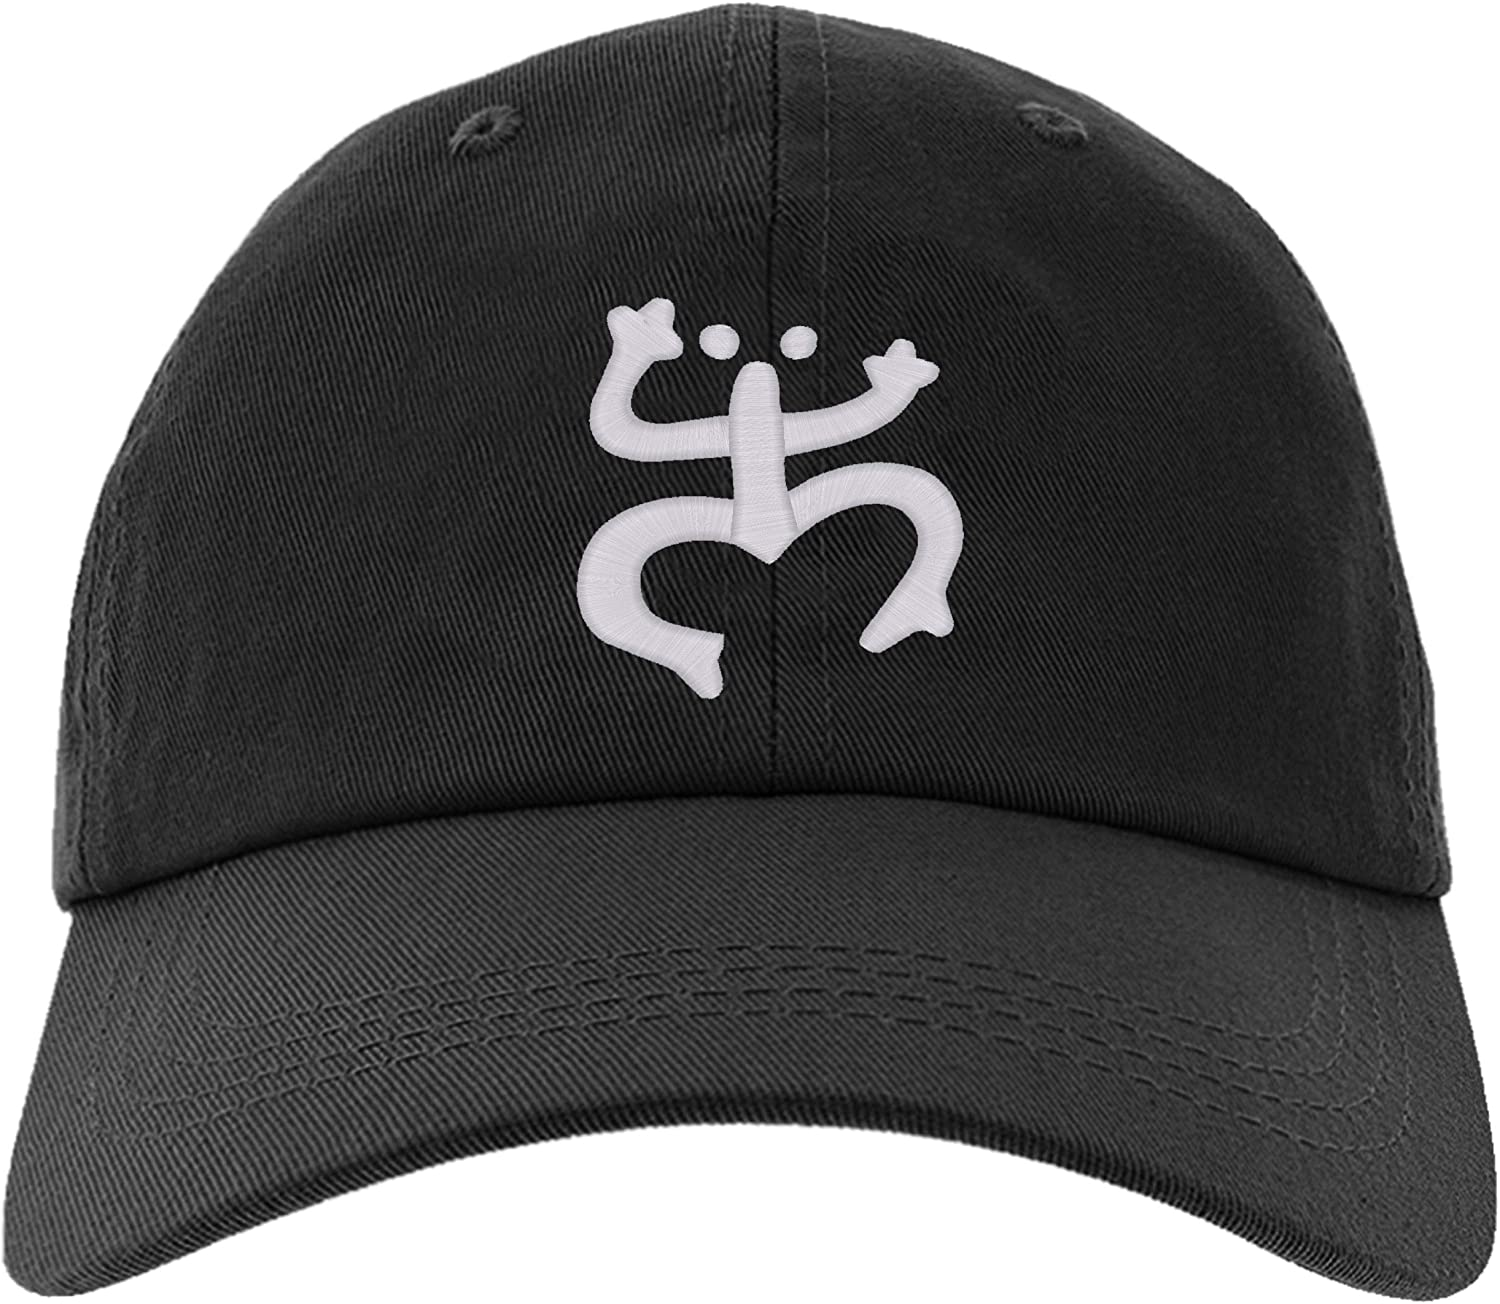 Embroidered Puerto Rico Taino Frog Cap, Adjustable Baseball Hat